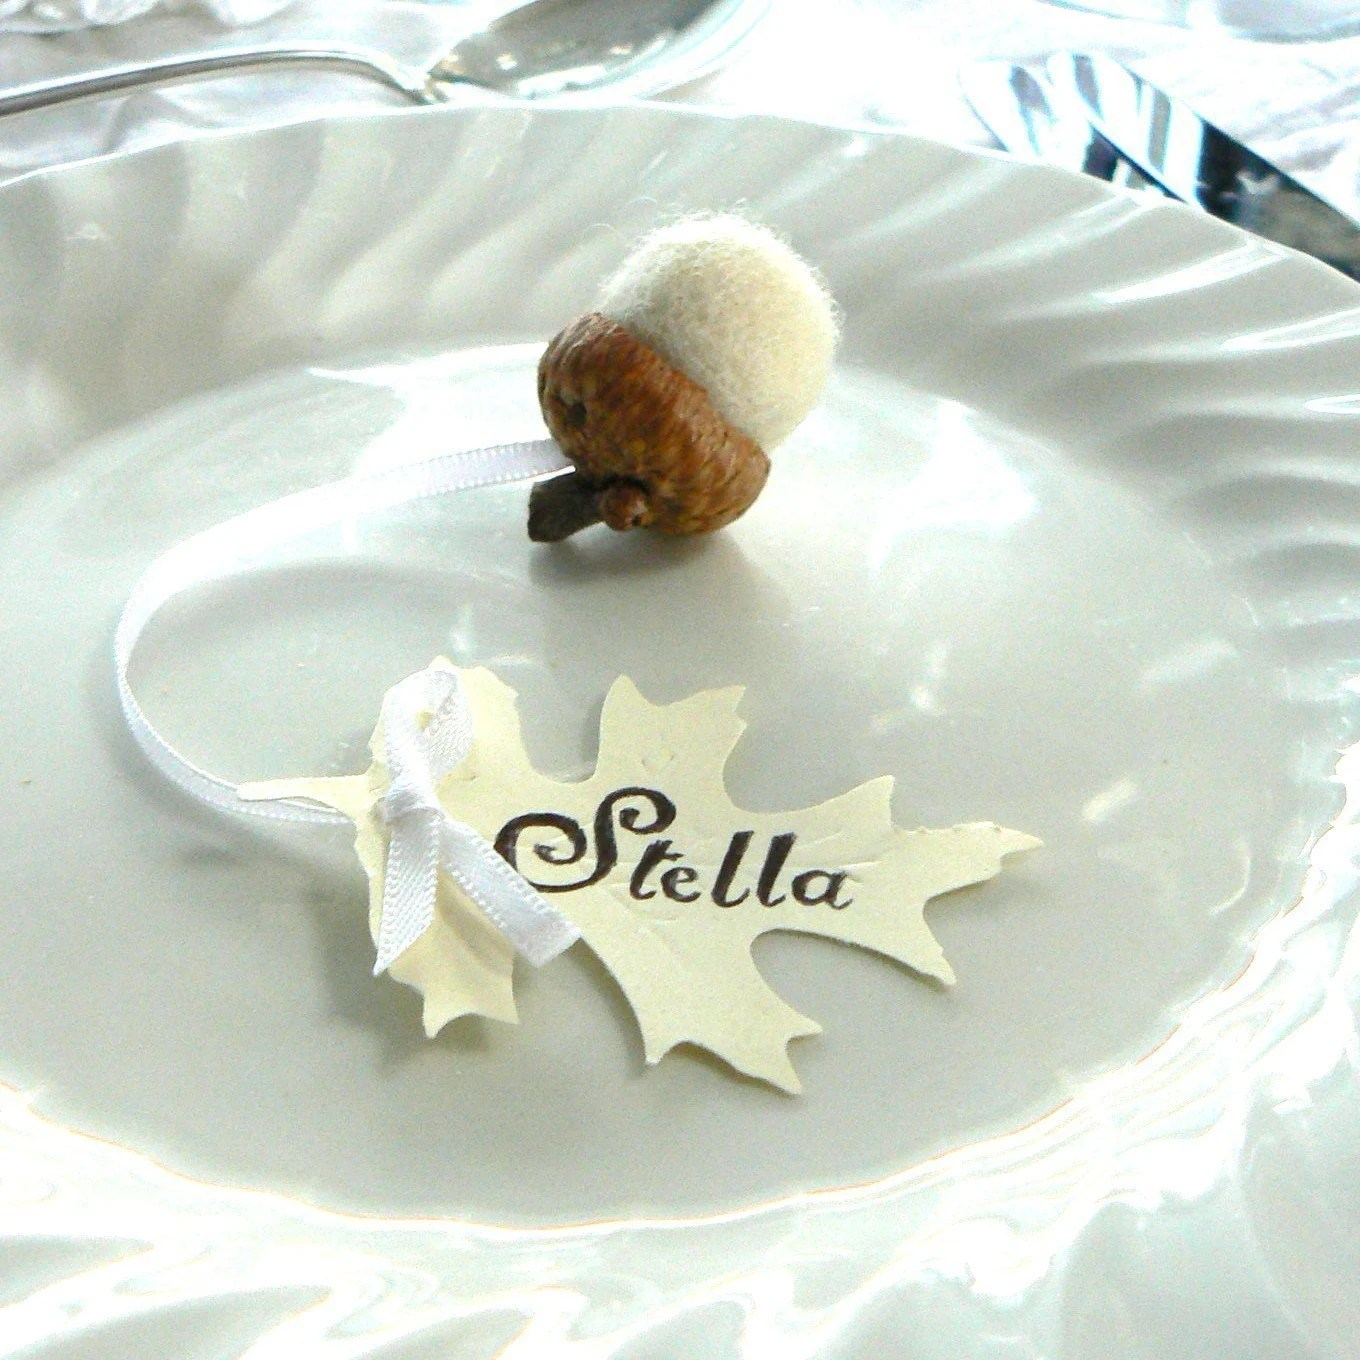 Fairytale Wedding Acorn and Oak Leaf Place Card Favors- Set of 10 Wooly Felted Acorns.